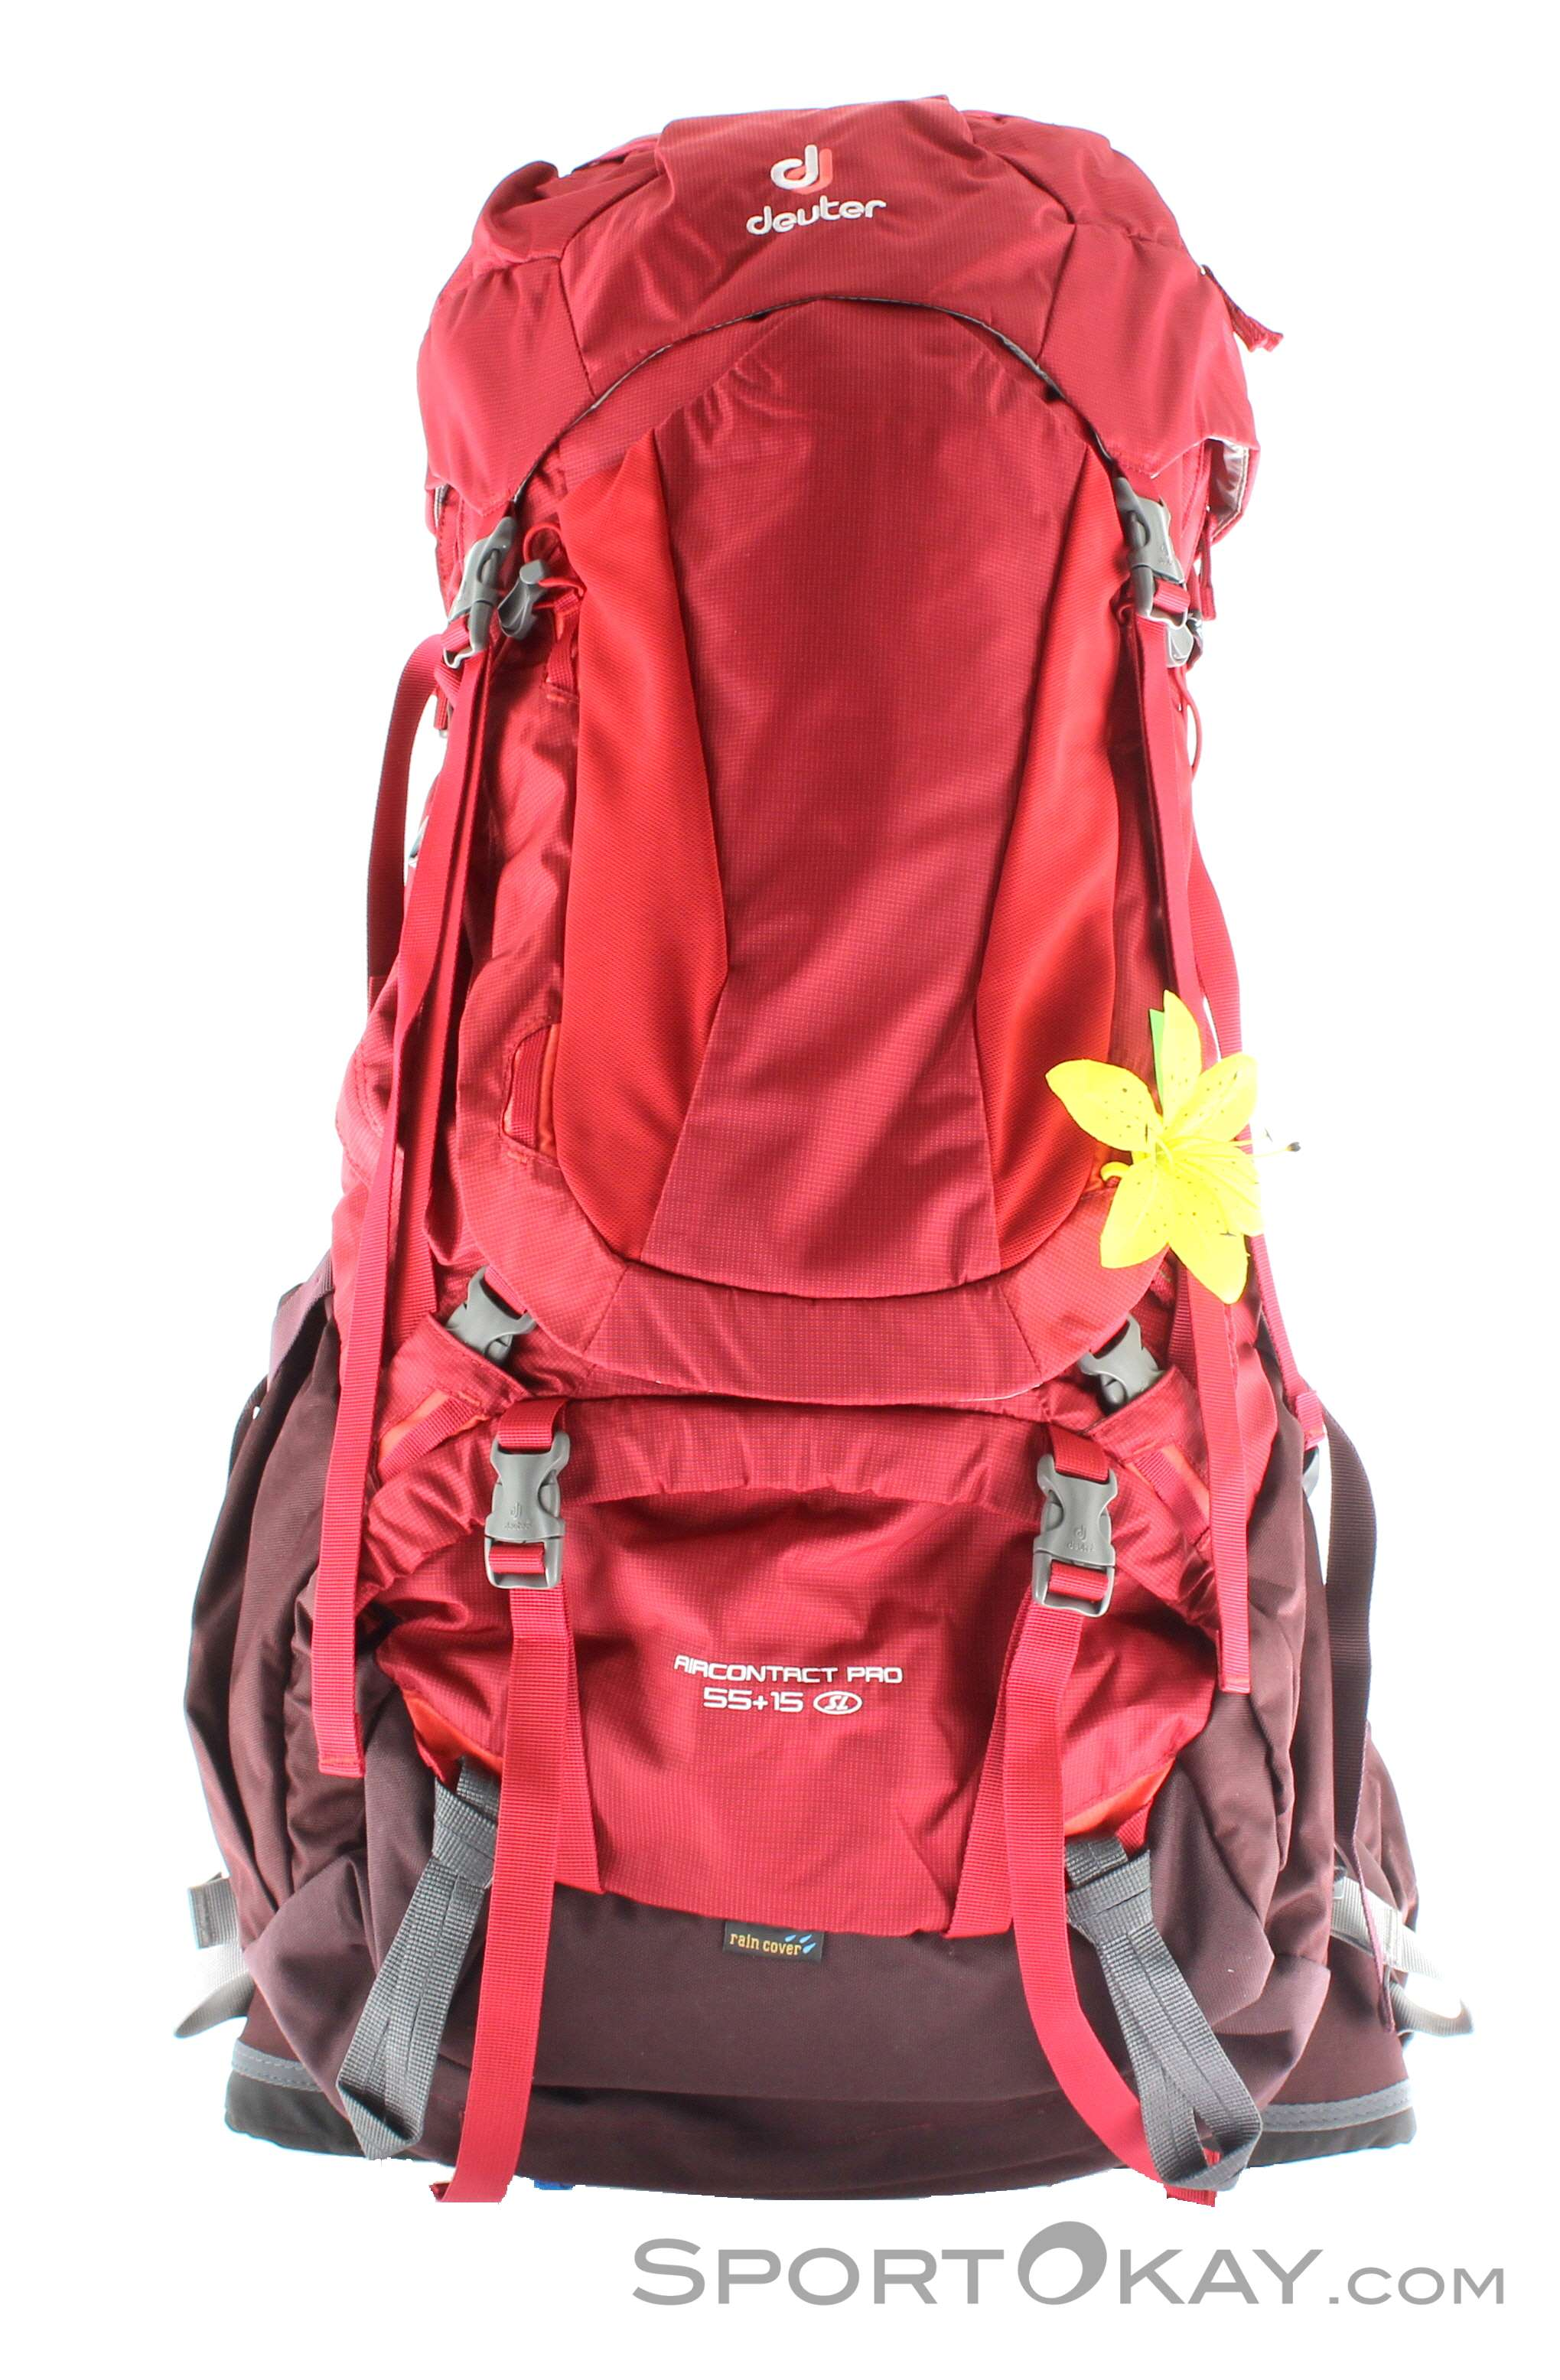 online for sale many fashionable factory authentic Deuter Deuter Aircontact Pro 55+15l SL Womens Backpack